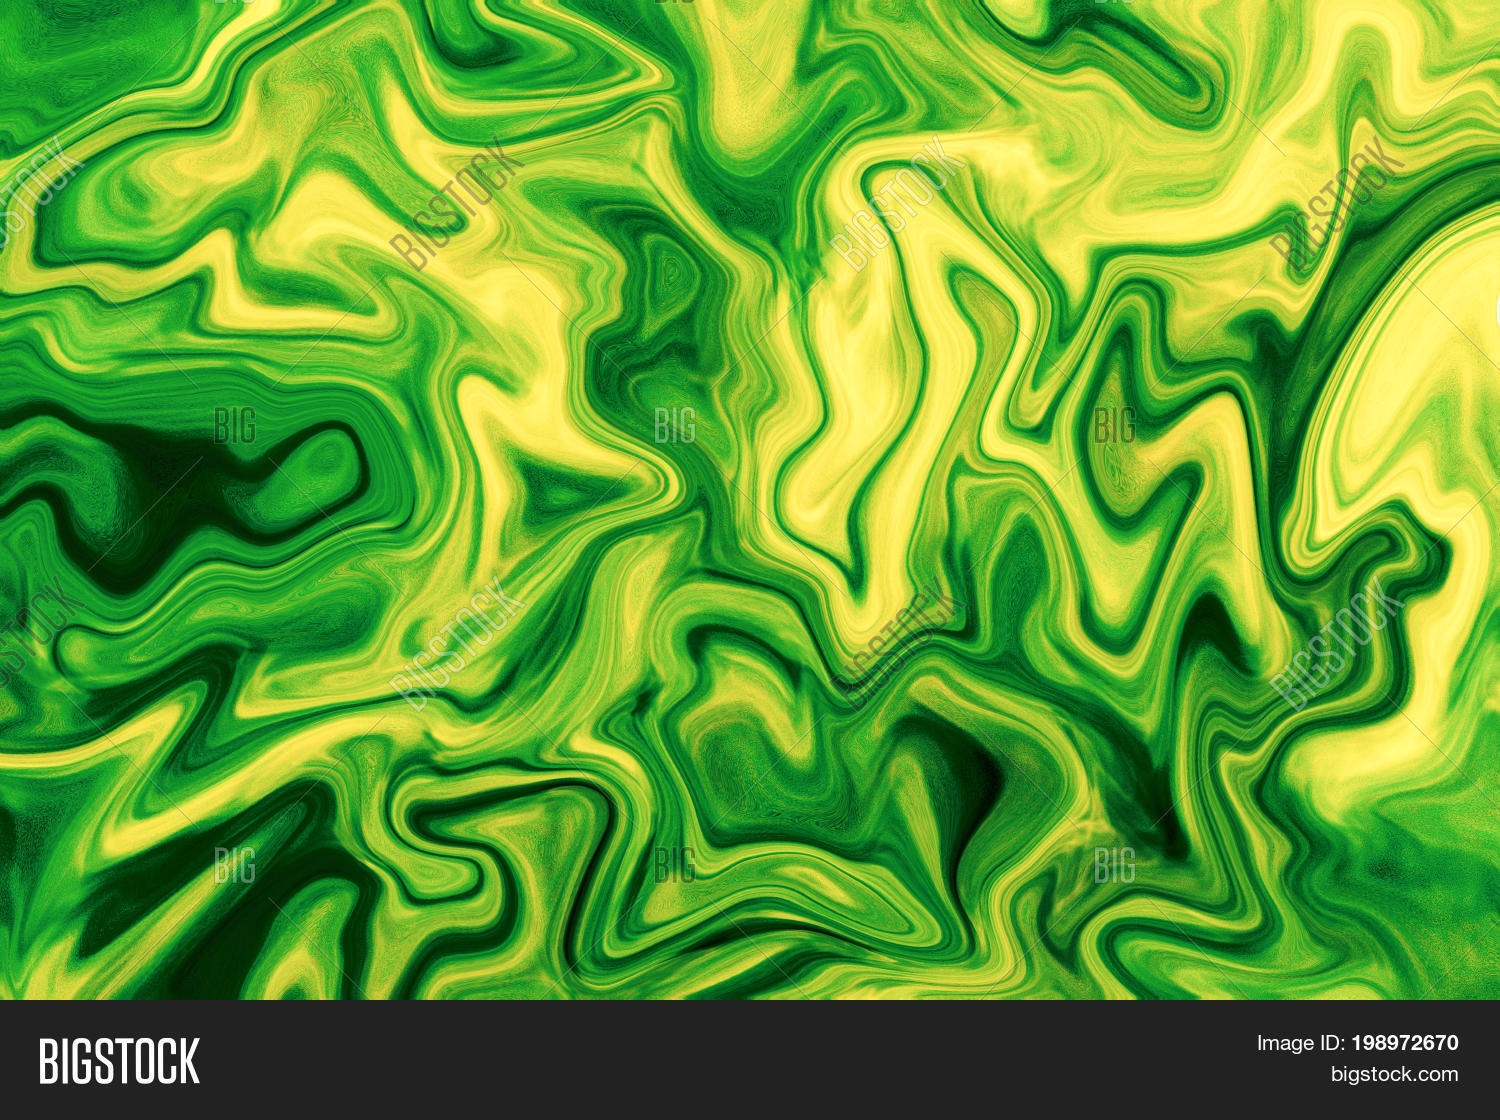 Fresh Green Marble Image Photo Free Trial Bigstock